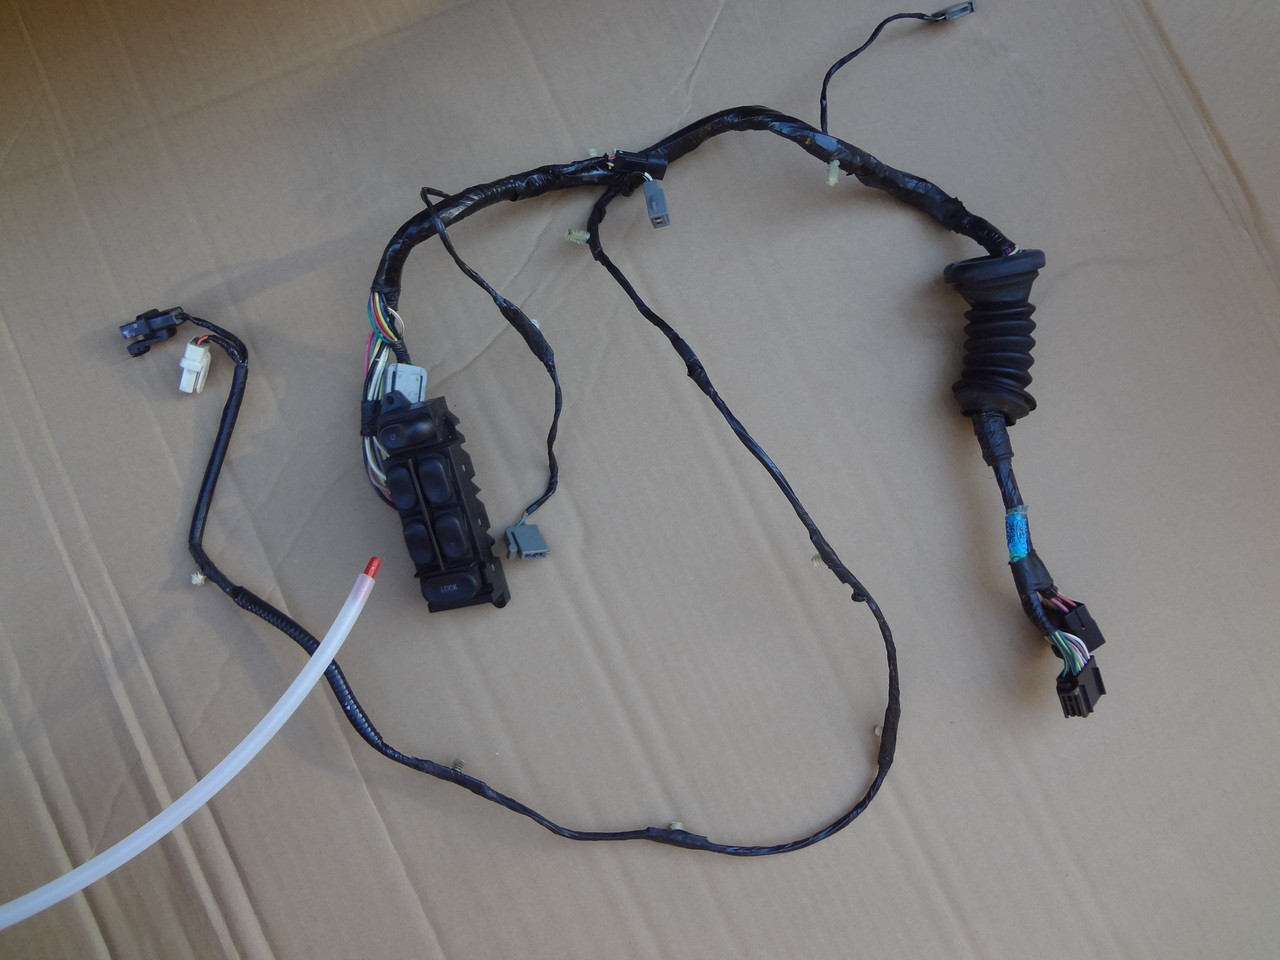 2003 2004 mustang cobra lh convertible door wire harness switch 3r33 14a509  [ 1280 x 960 Pixel ]